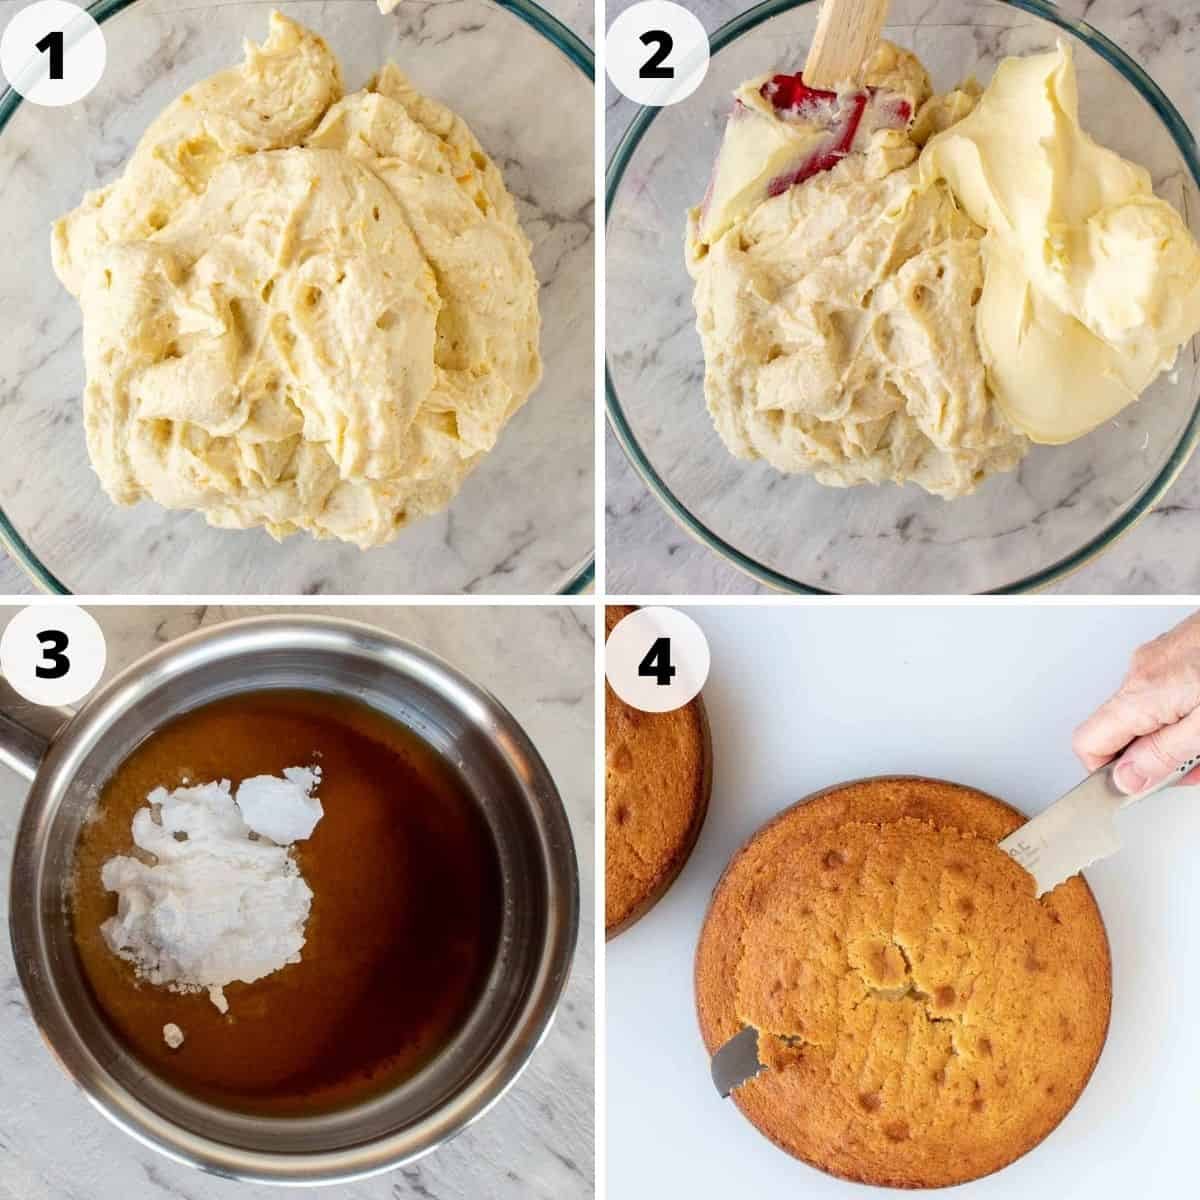 four-step photo collage showing how to make filling and prepare to assemble cannoli cake.